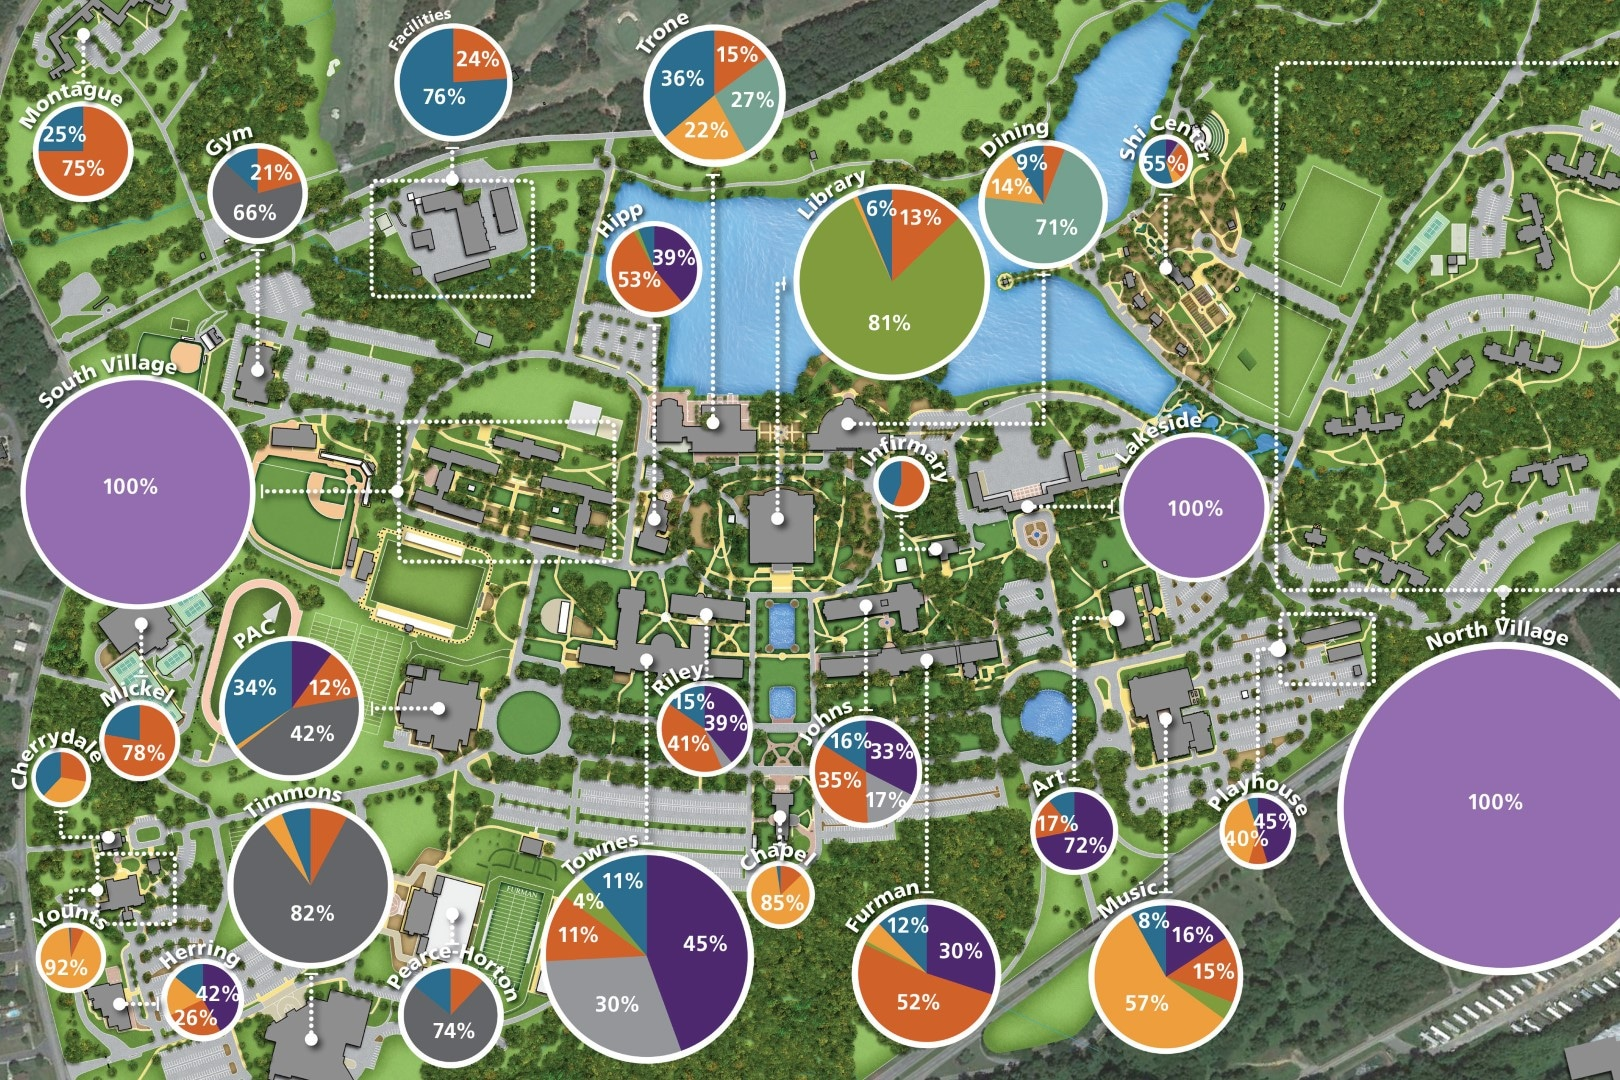 furman university campus map Tsw Furman University Space Analysis Plan furman university campus map